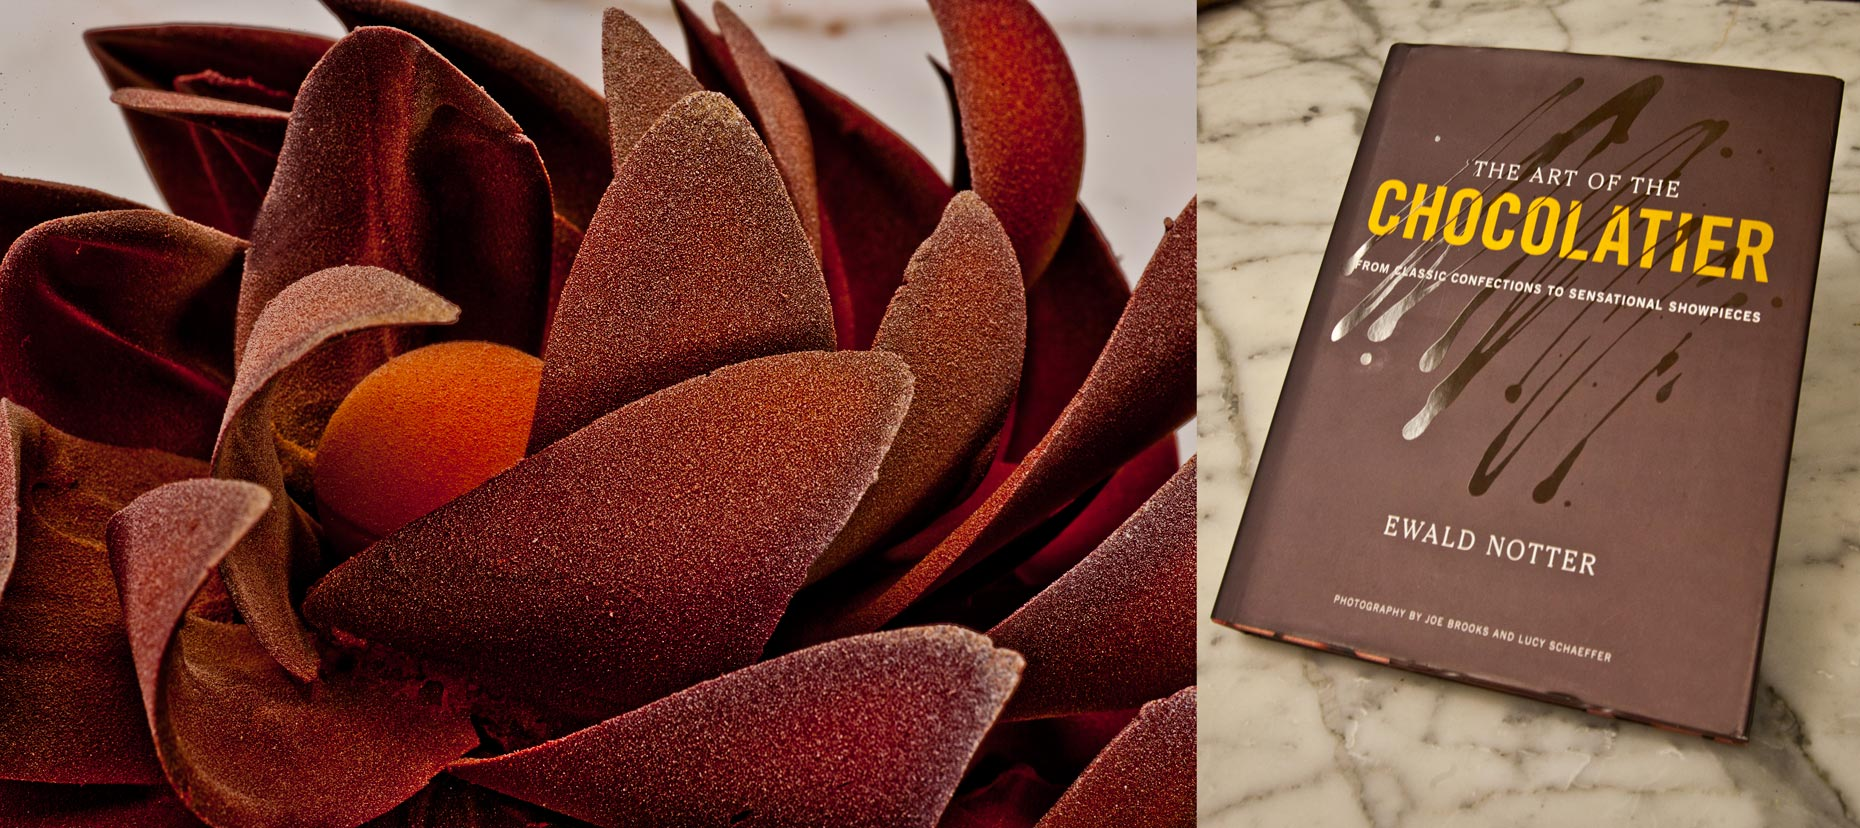 Dessert Photography | Ewald Notter Chocolate Book